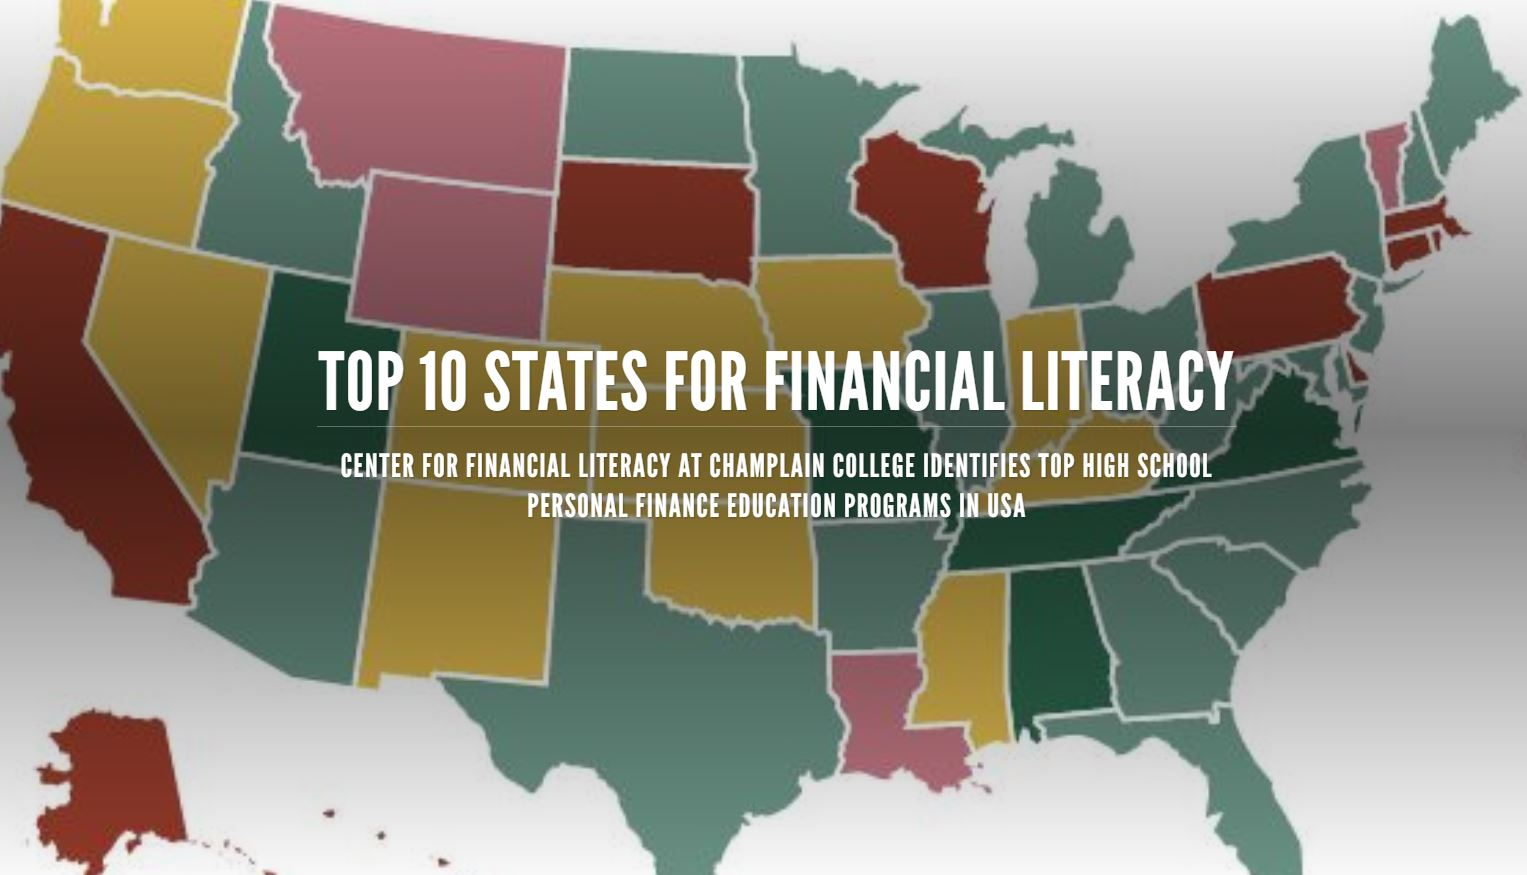 Champlain College Center For Financial Literacy Releases Top 10